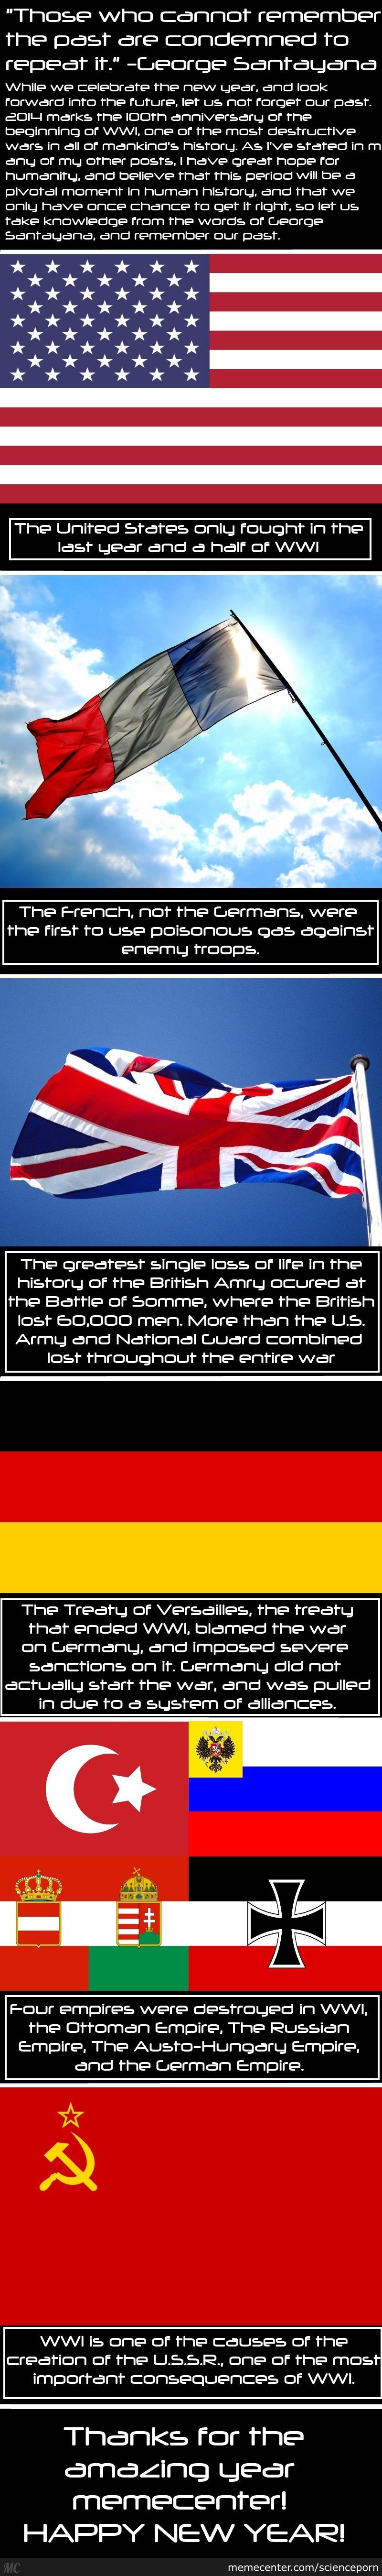 Wwi 100Th Anniversary Facts